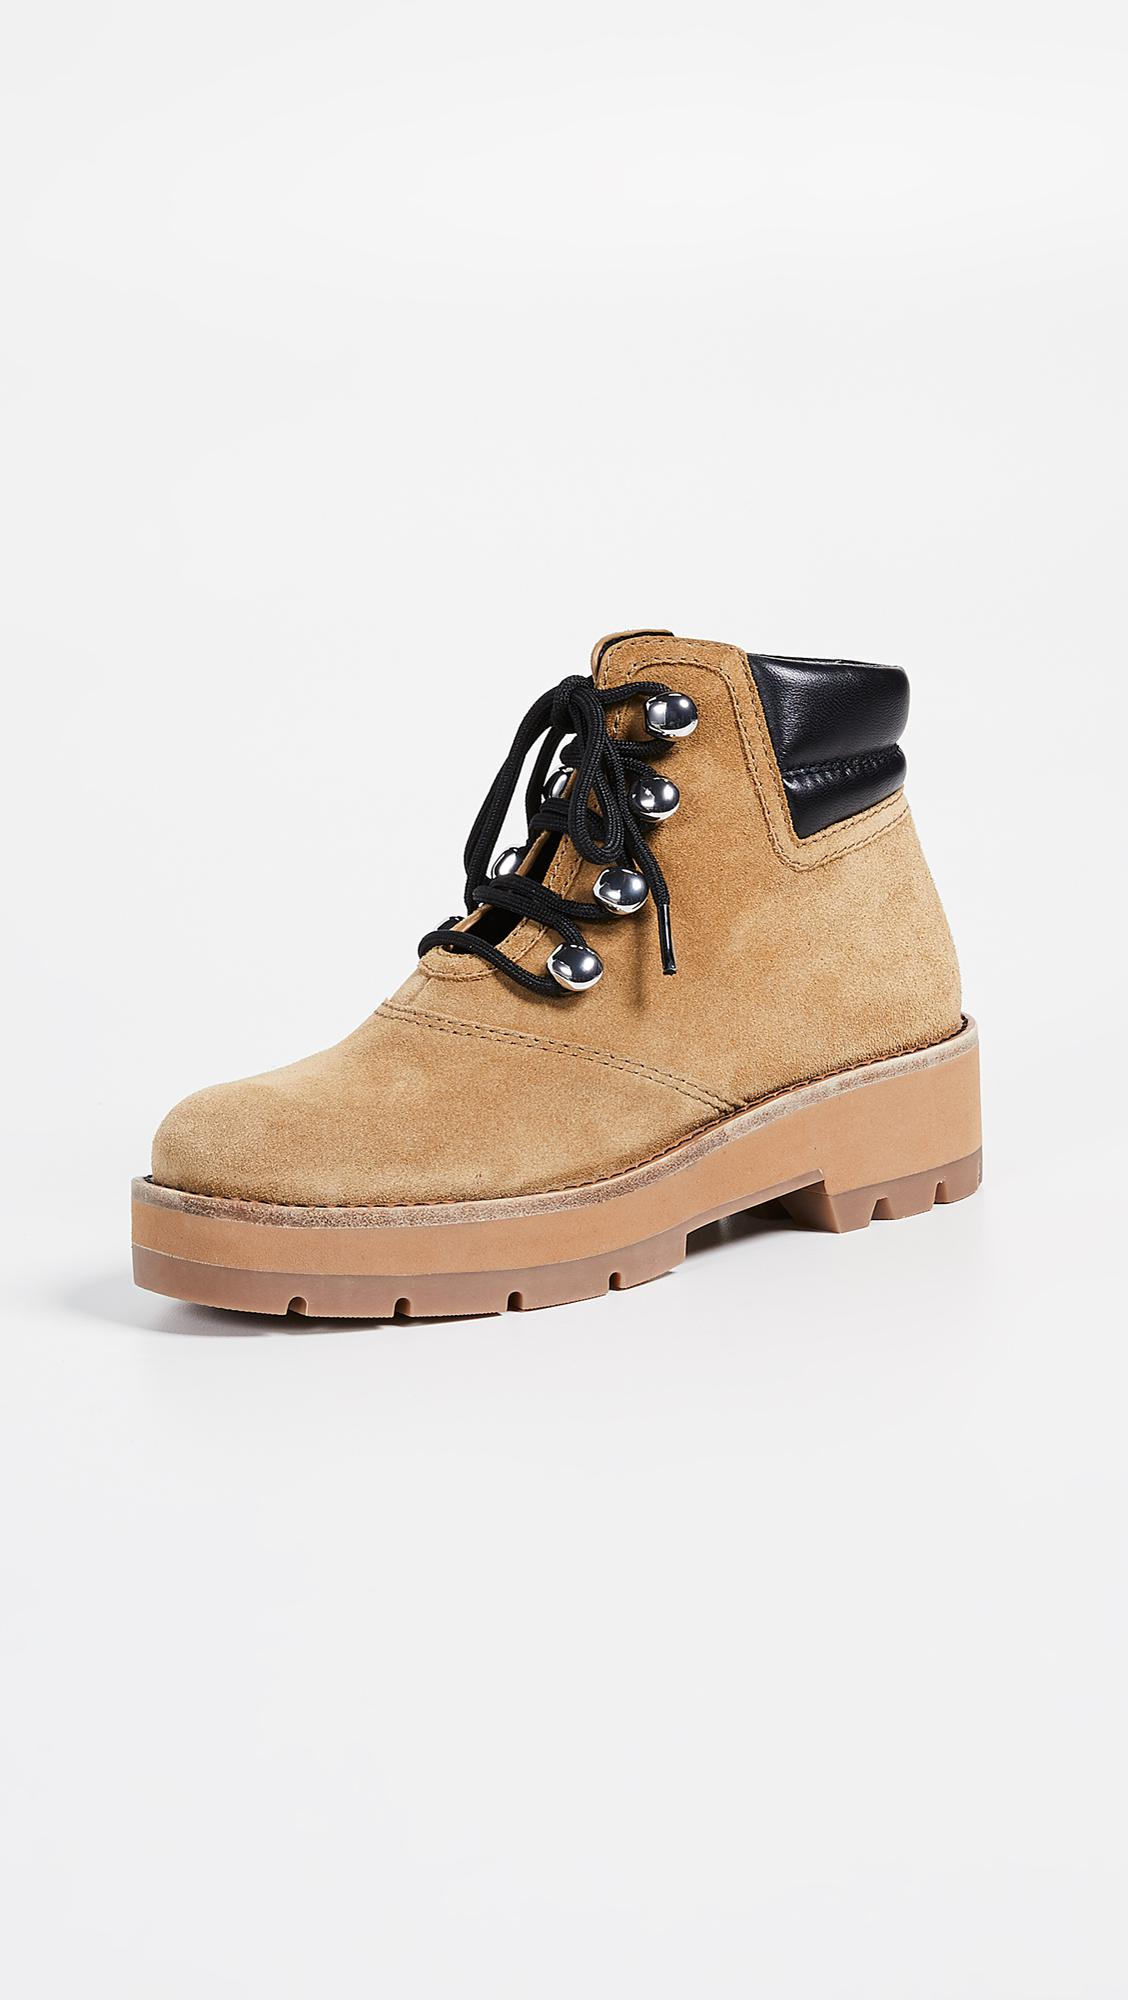 b9089eede9382 Lyst - 3.1 Phillip Lim Dylan Hiking Boots - Save 40%